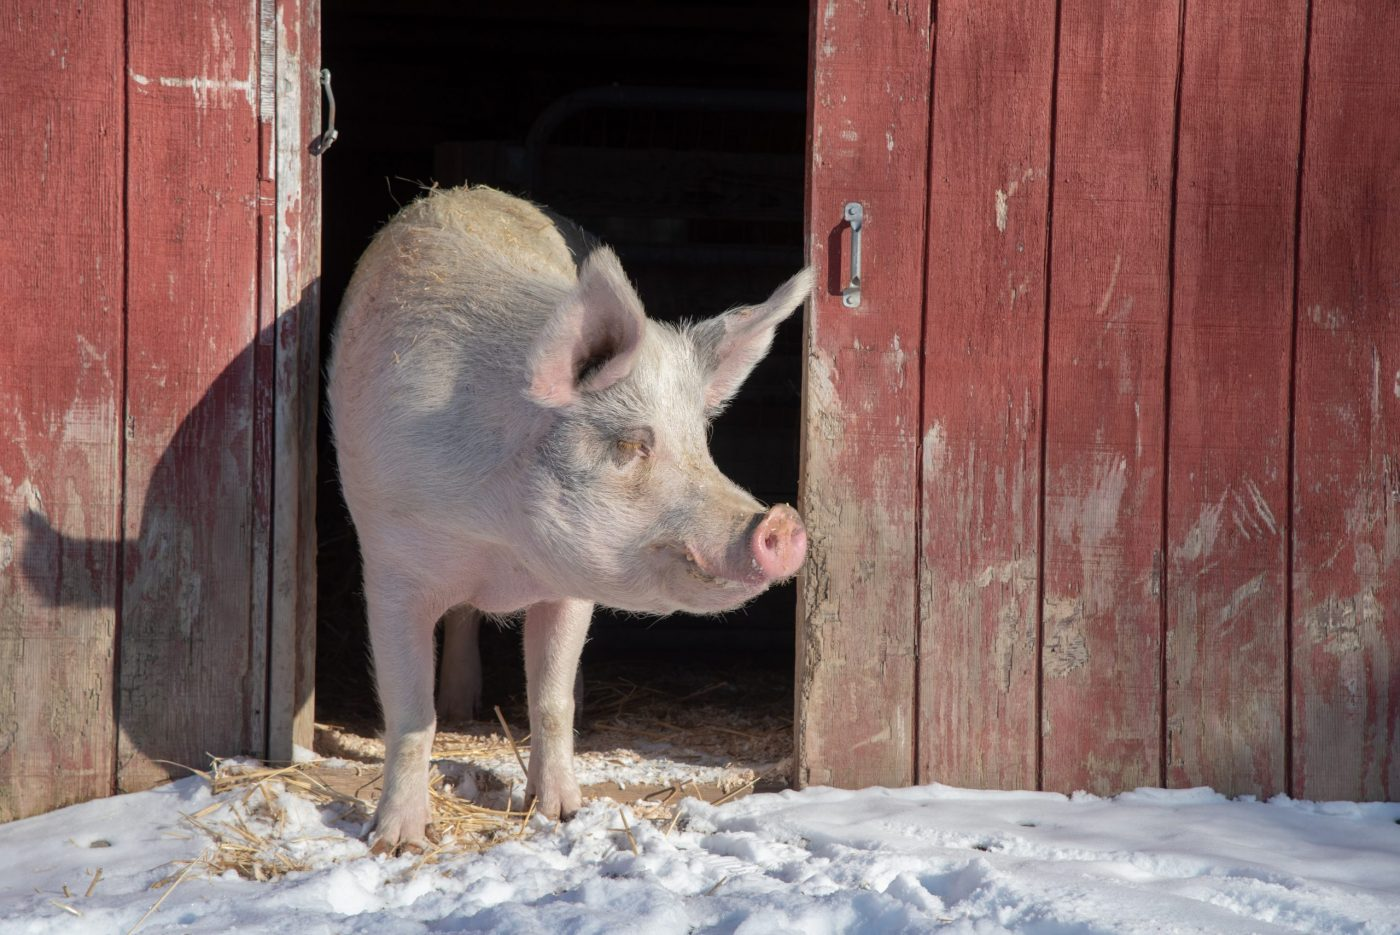 Rory pig at Farm Sanctuary